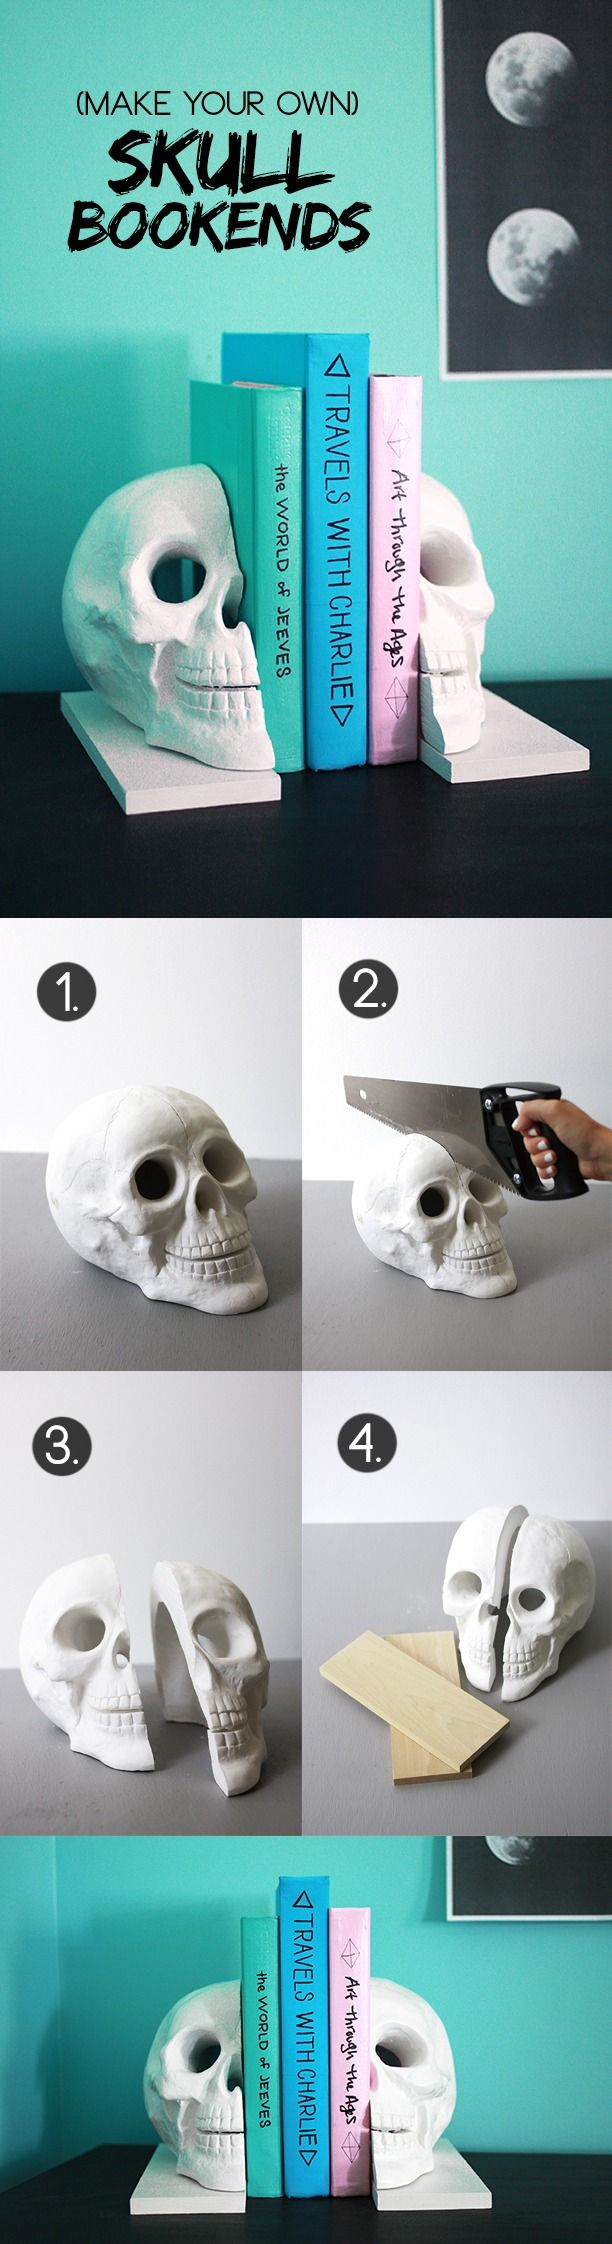 With Halloween just around the corner, we thought it's about time we take look into creepy crafts, such as these DIY Skull projects. These DIY skull ideas will be great for decorating your home or giving your October outfits that touch of horror. Hope you enjoy this list of DIY skull crafts! Halloween Skull Decoration … Continue reading 15 DIY Halloween Skull Decoration Ideas →